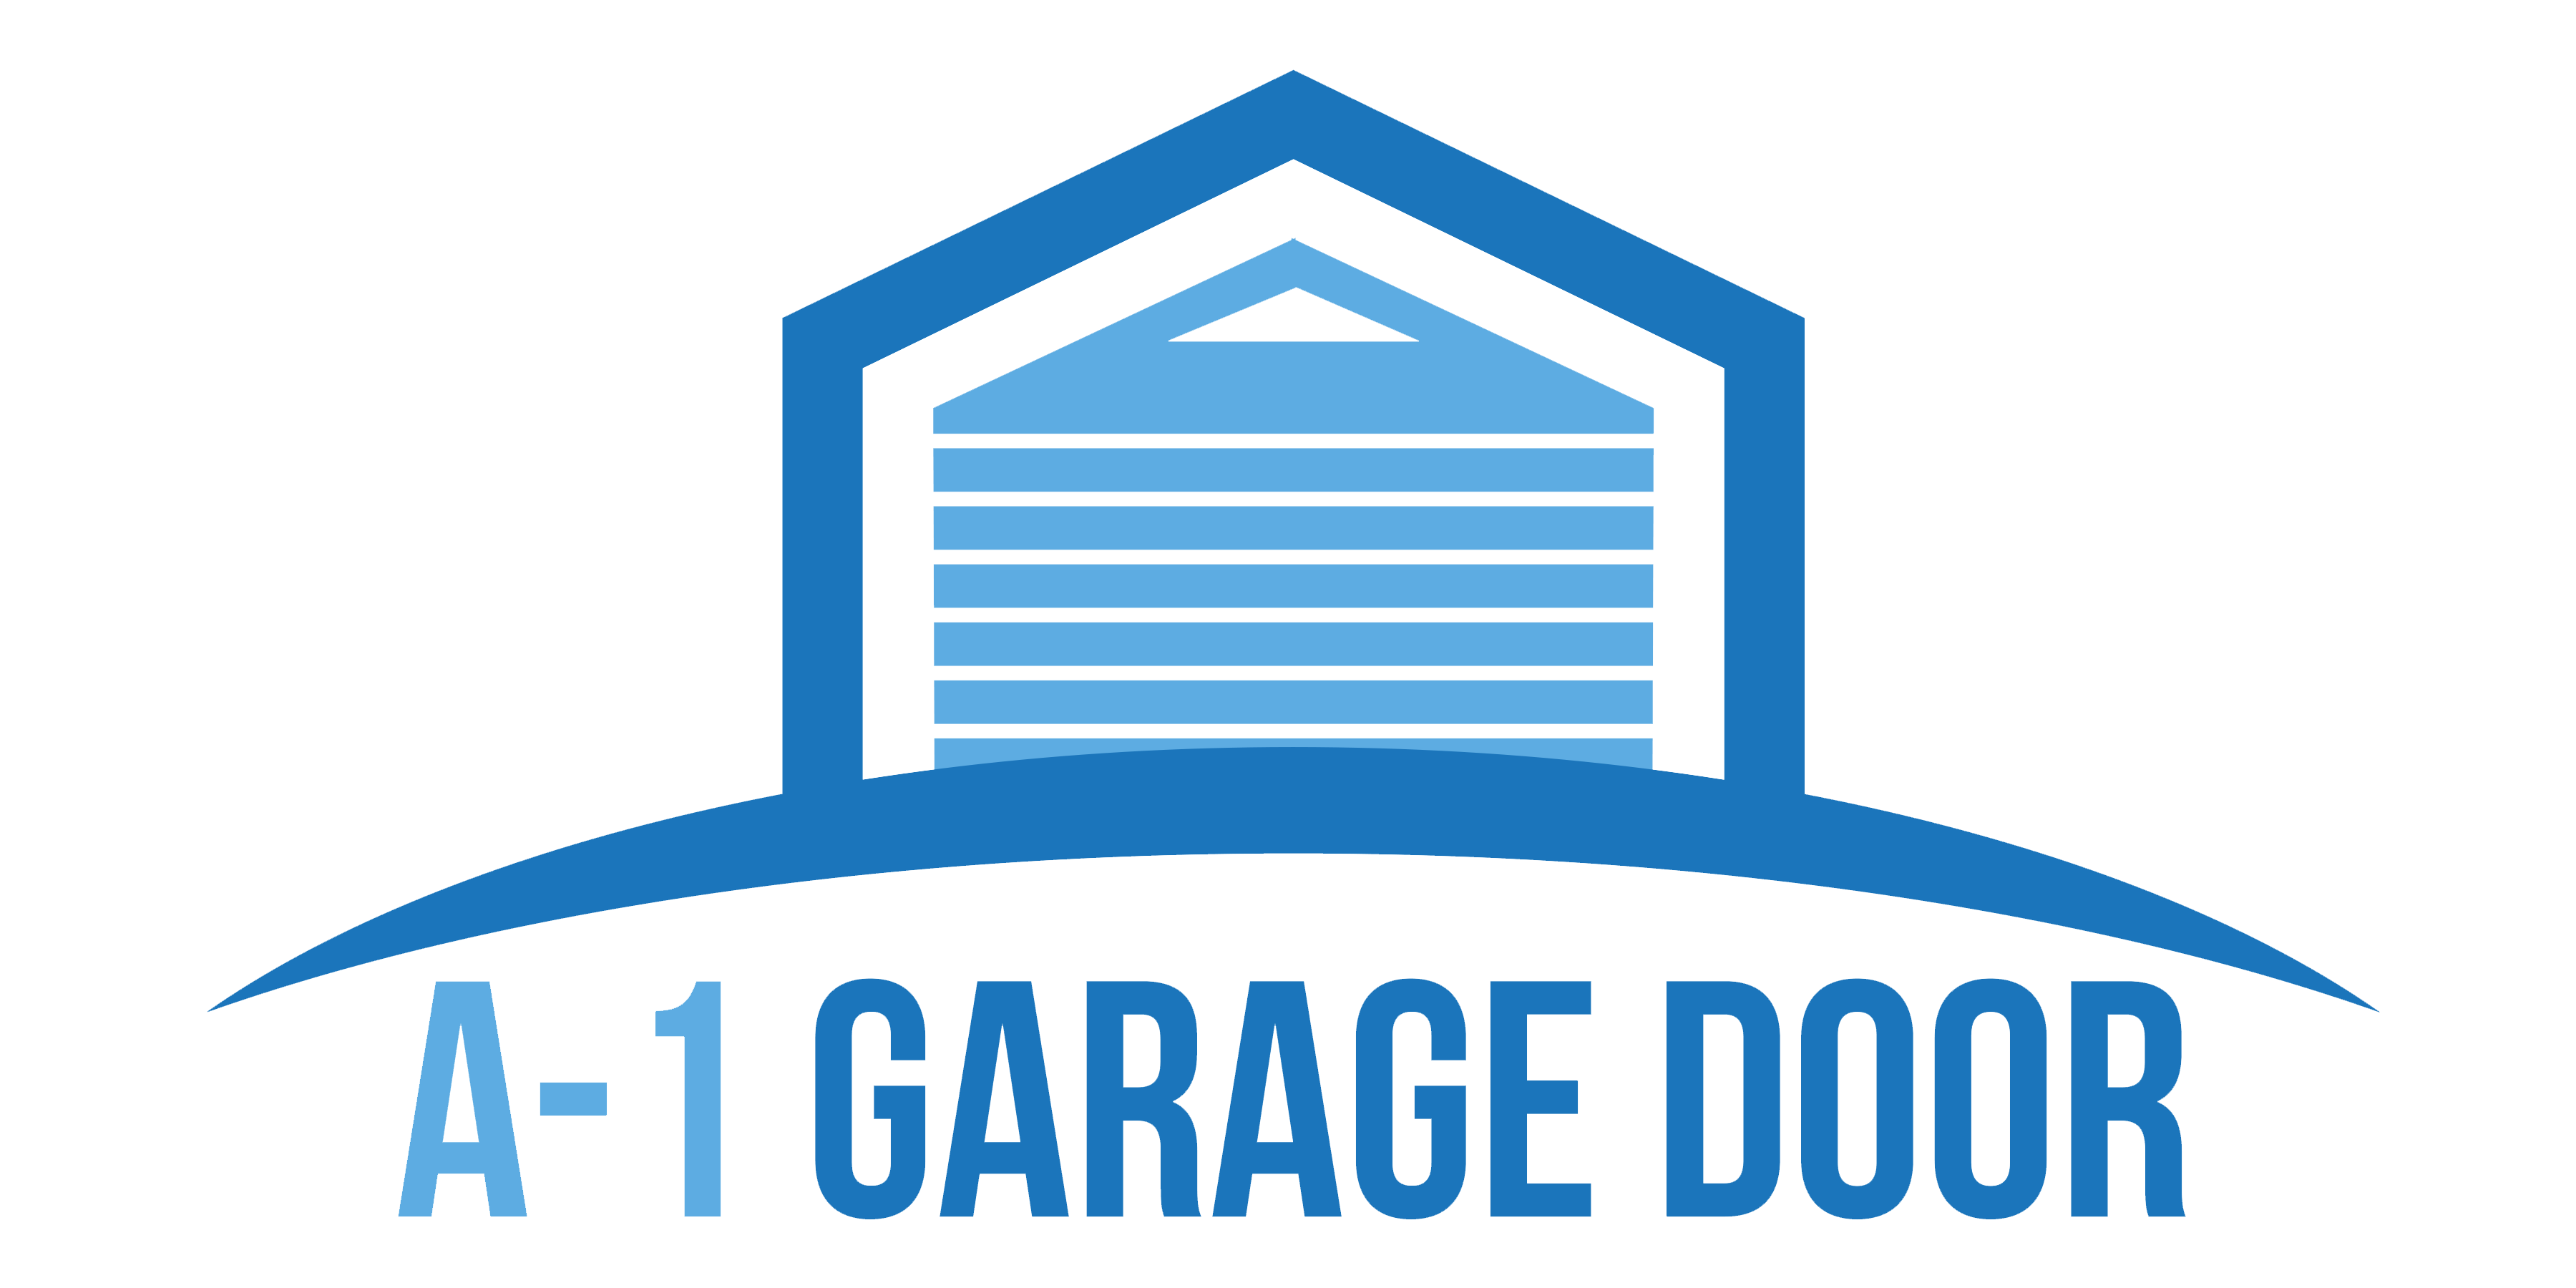 Merveilleux A1 Garage Door Is A Full Line Garage Door Company Operated By Specially  Trained, Certified And Uniformed Technicians. We Specialize In Providing  Quality ...